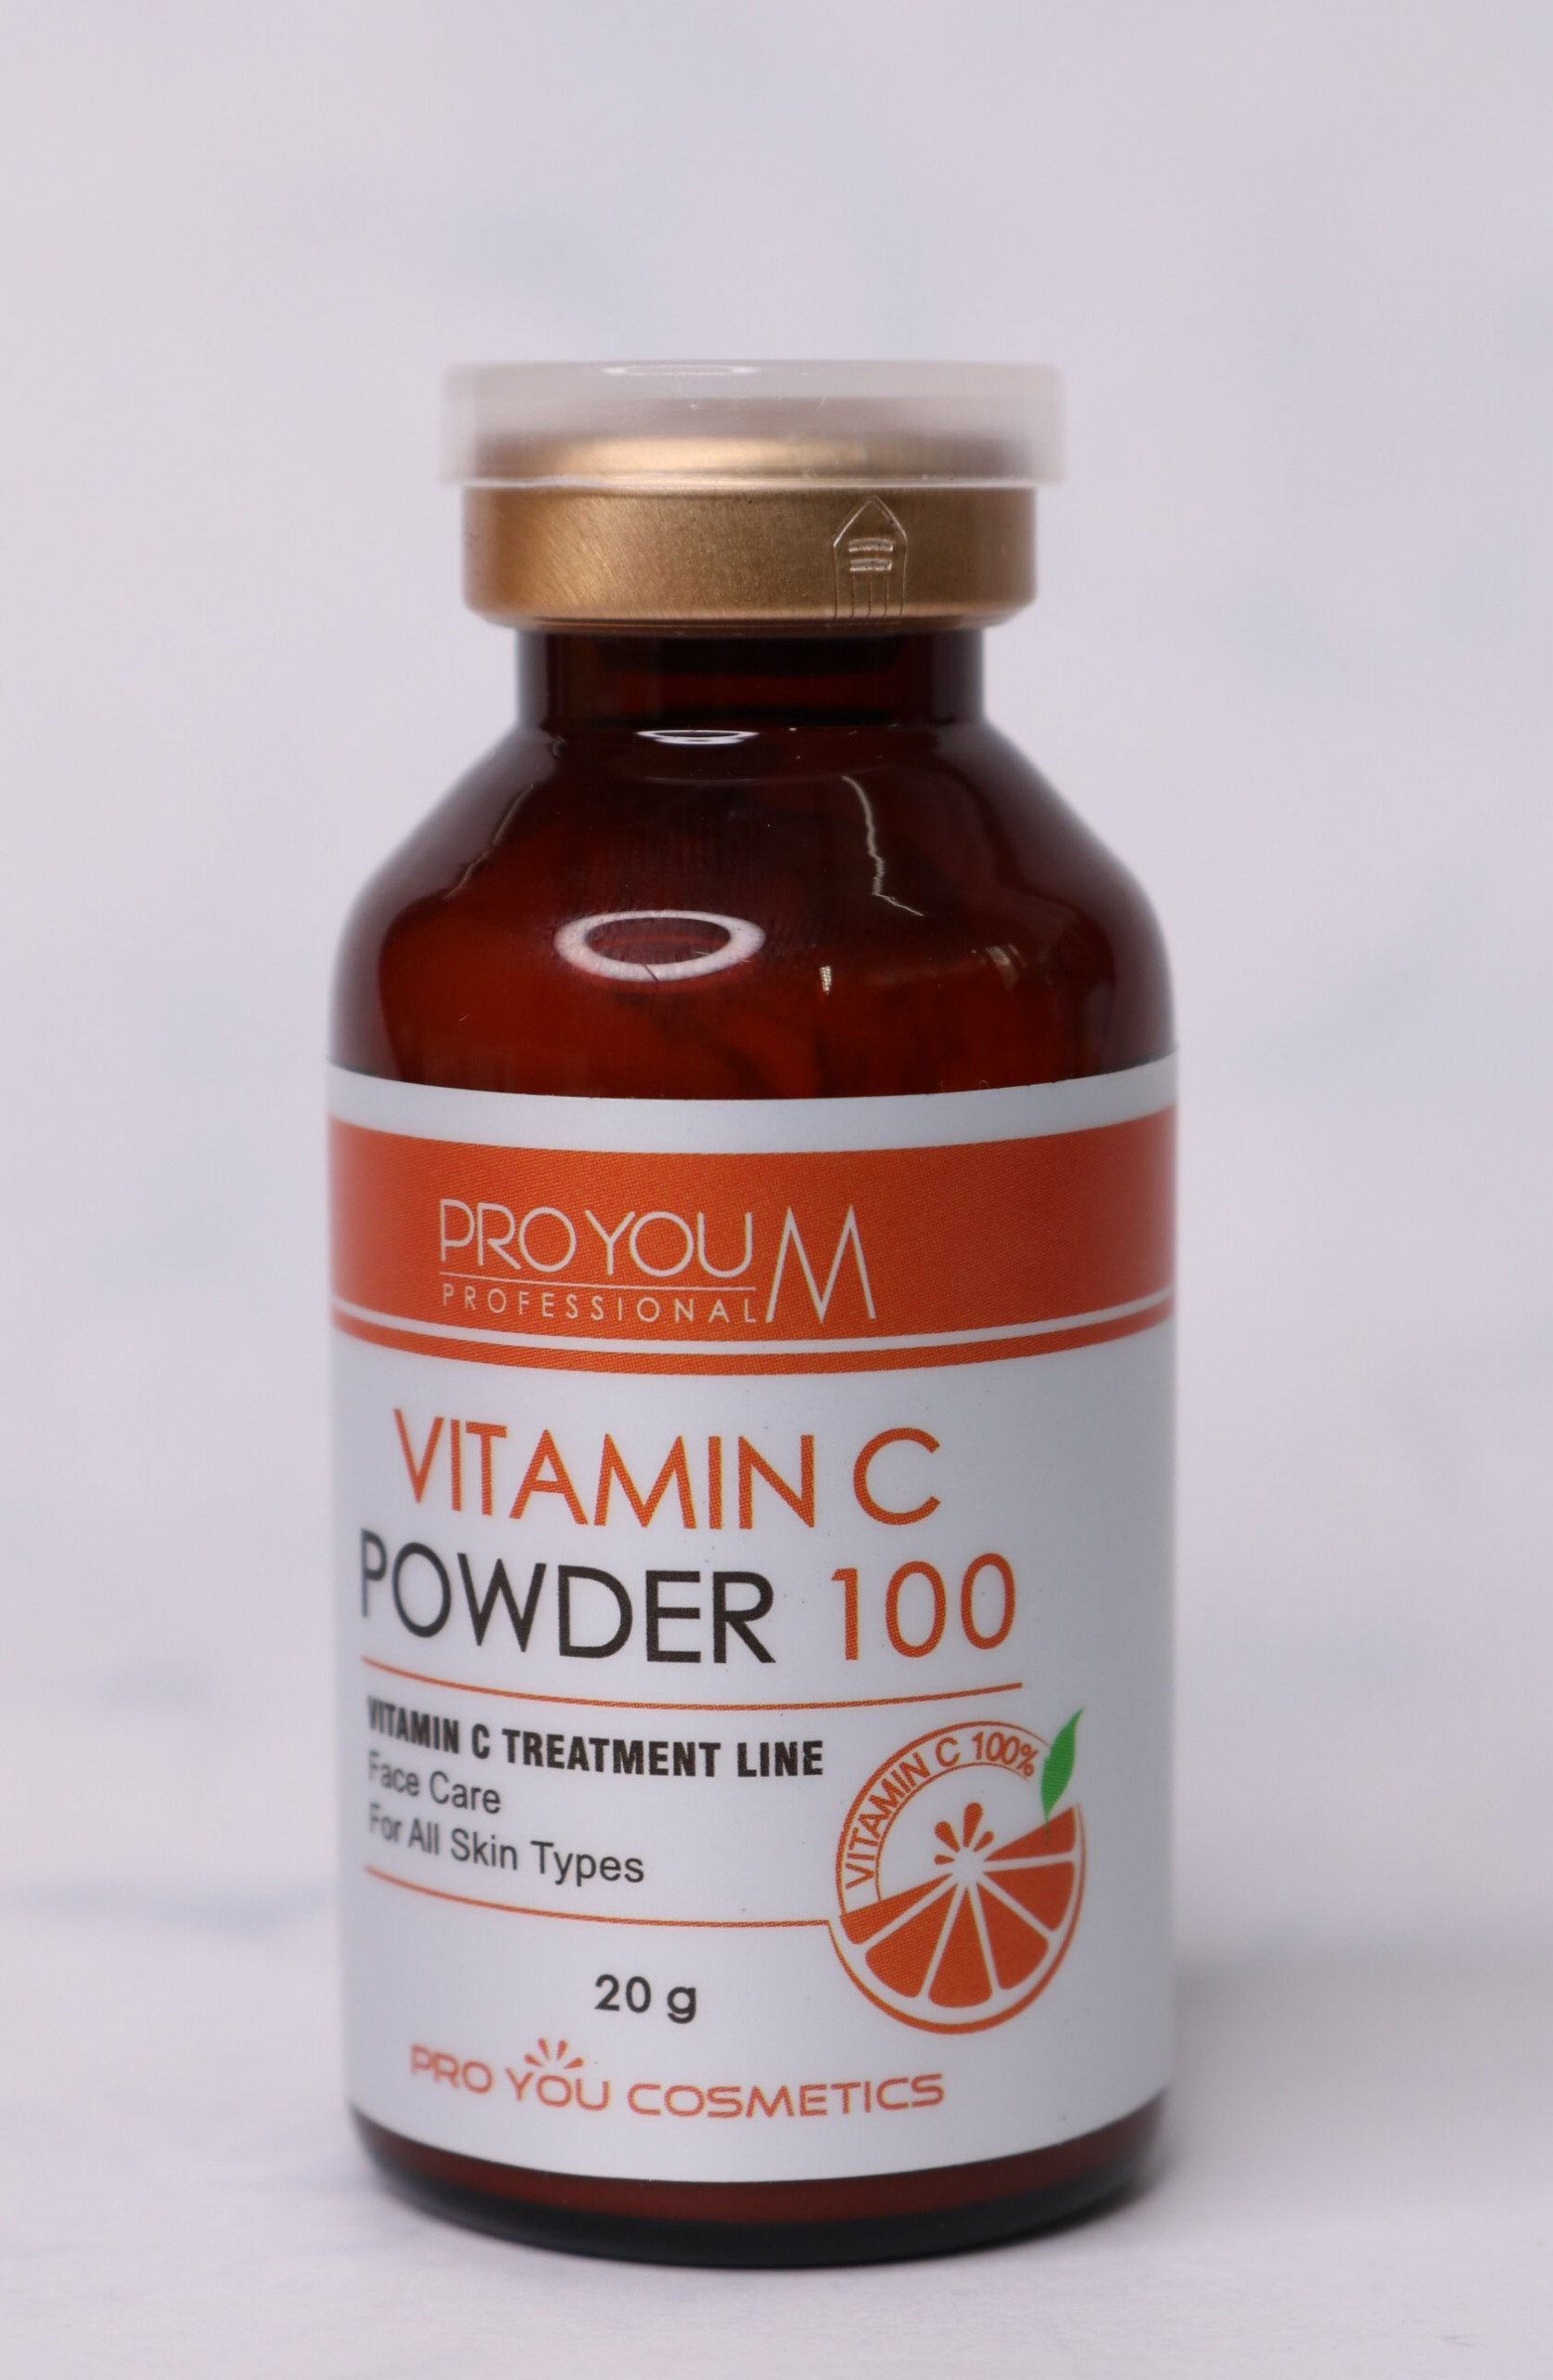 Vitamin C bột Pro You M 20g